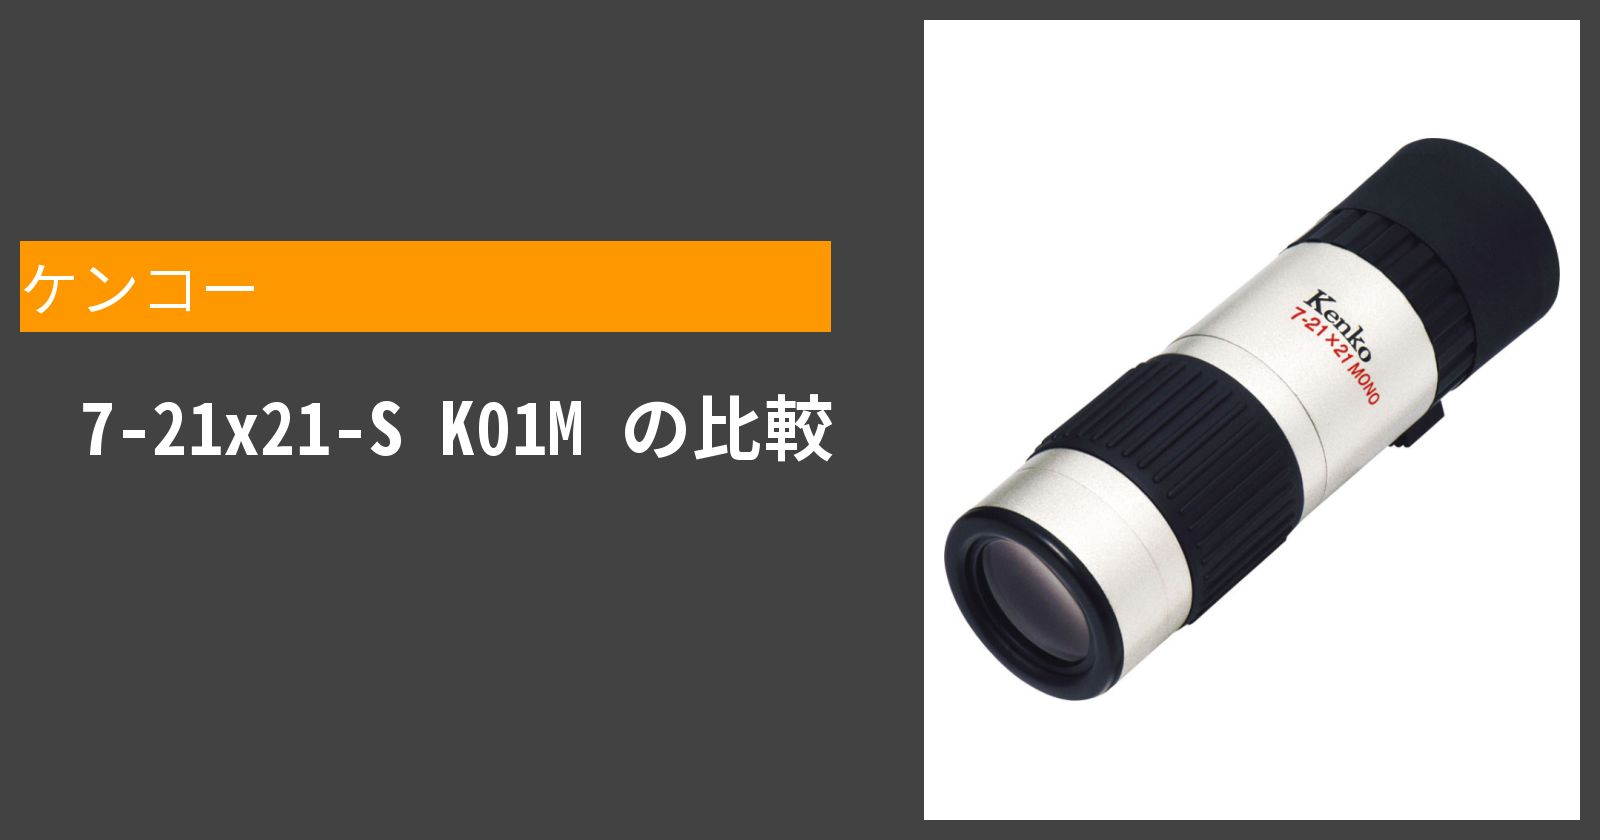 7-21x21-S K01Mを徹底評価